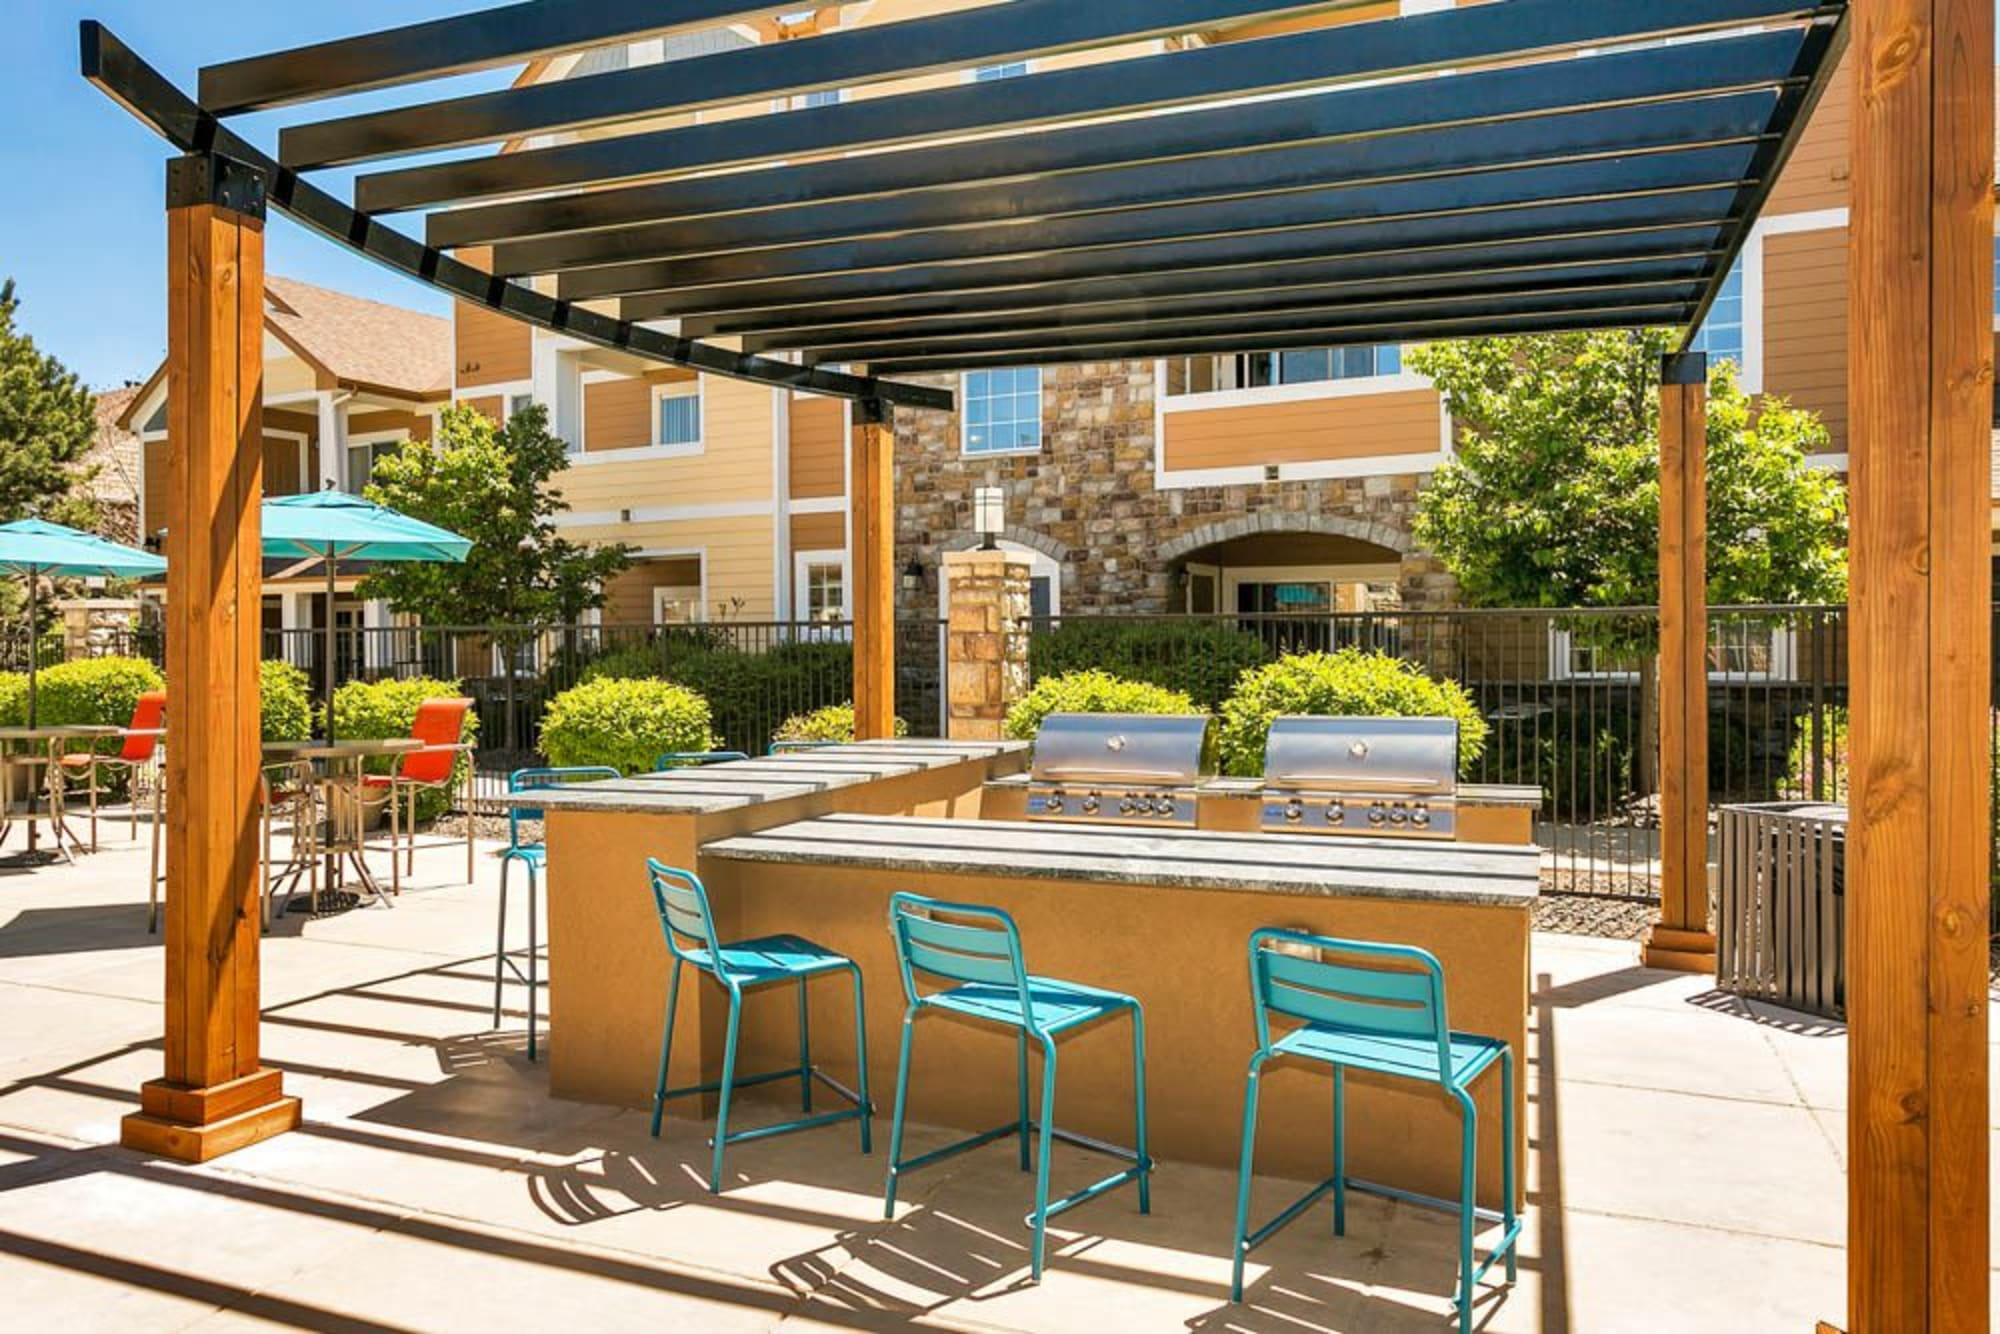 A grilling station at Crestone Apartments in Aurora, Colorado